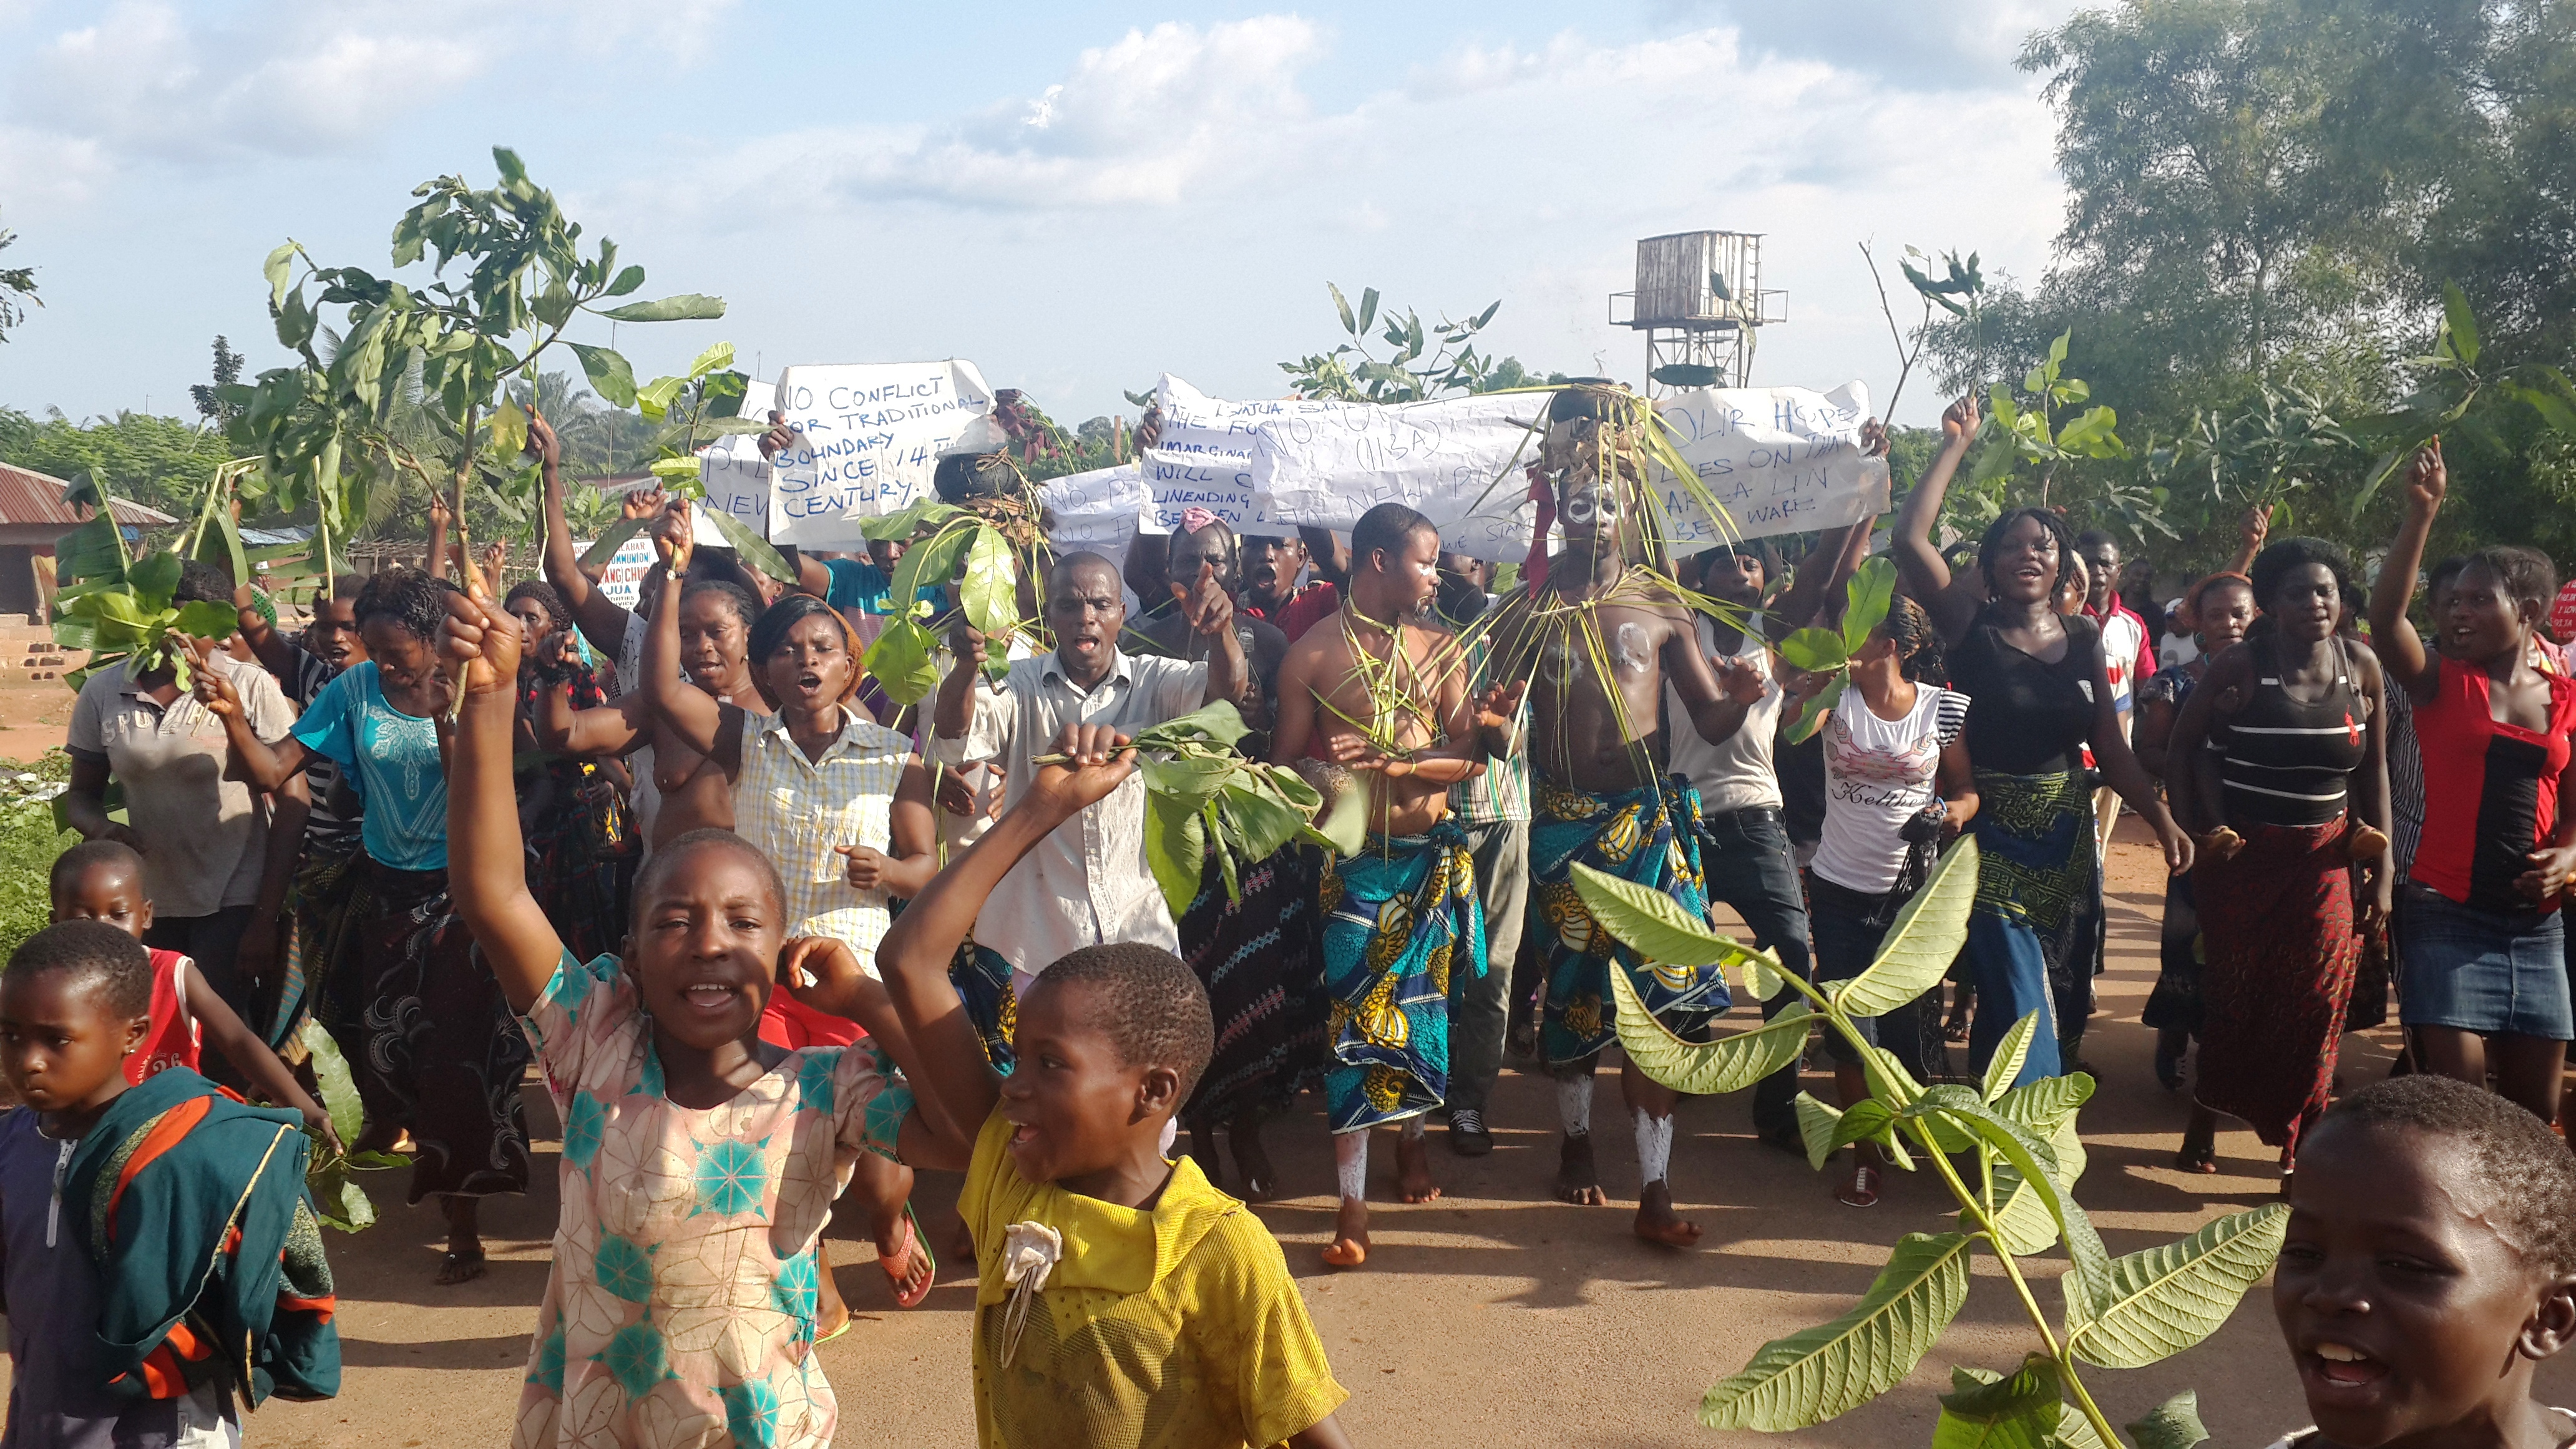 Even the Danare children were not left out of the protest to save their land